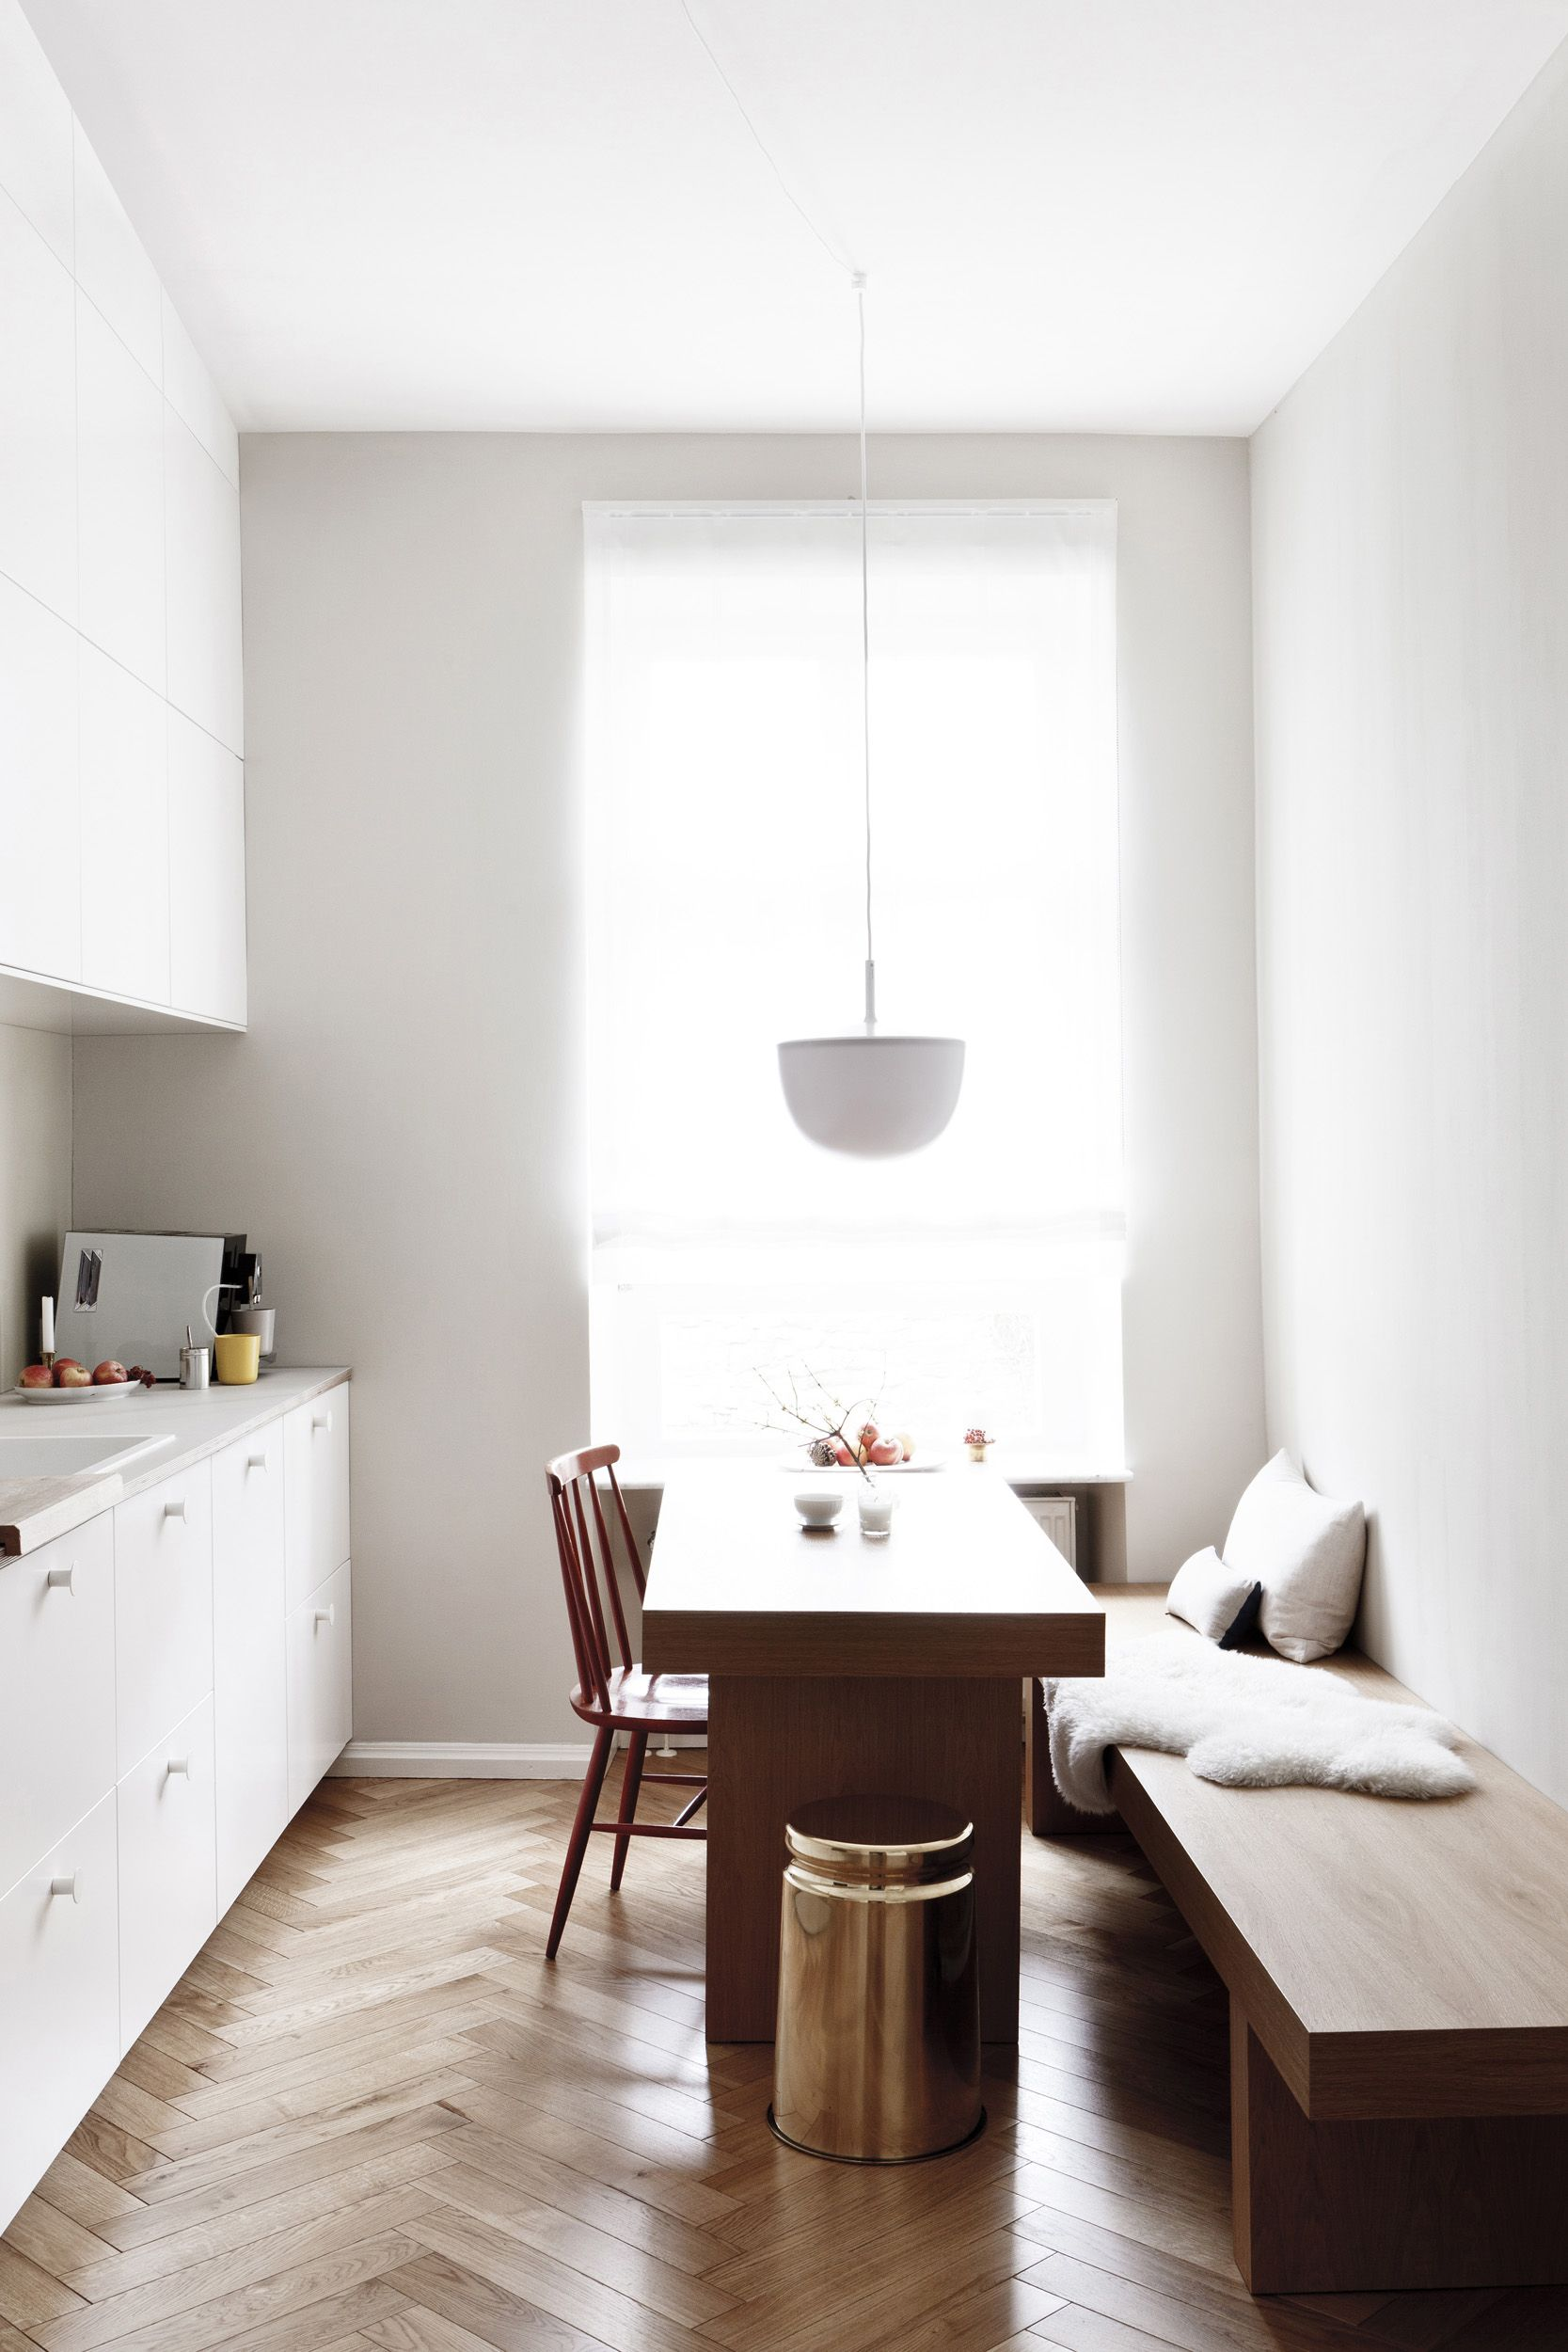 Minimalist Apartment Decor Modern Luxury Ideas Customized Ikea Kitchen In A Luxe Remodel By Studio Oink Mainz